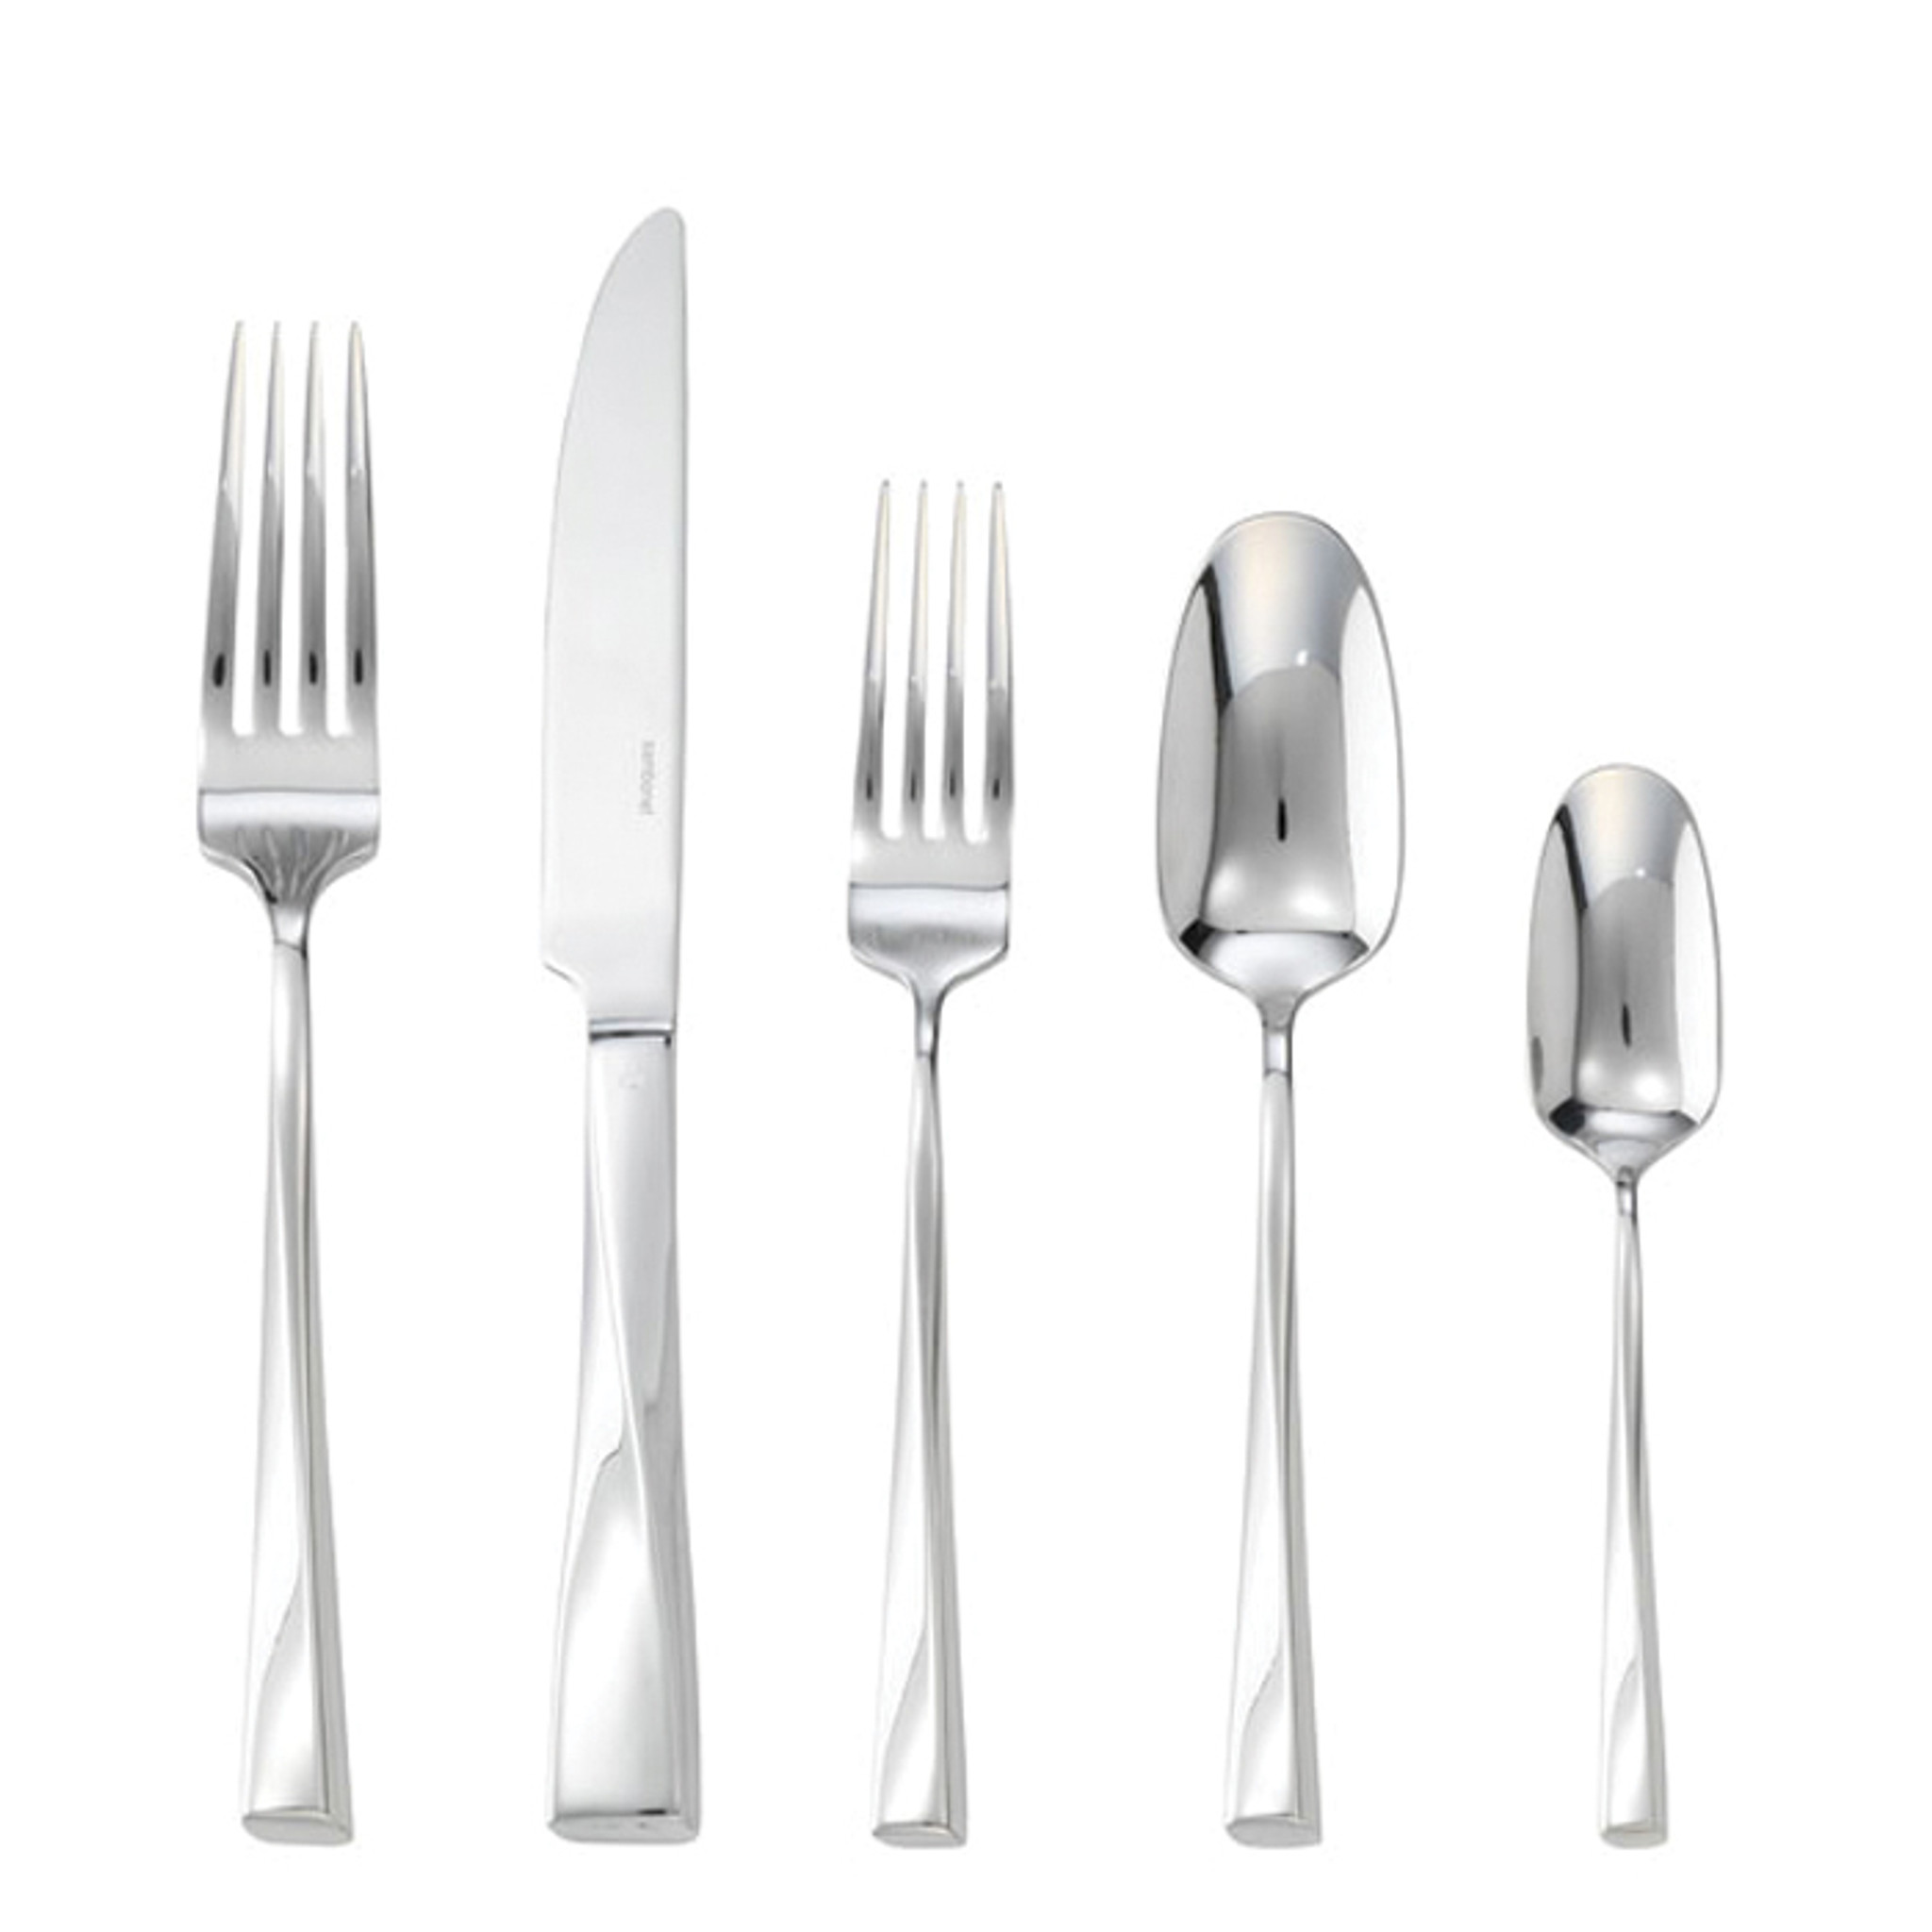 Sambonet twist 5 piece place setting solid handle silverplated on 18 10 stainless steel 52726 93 - Twisted silverware ...